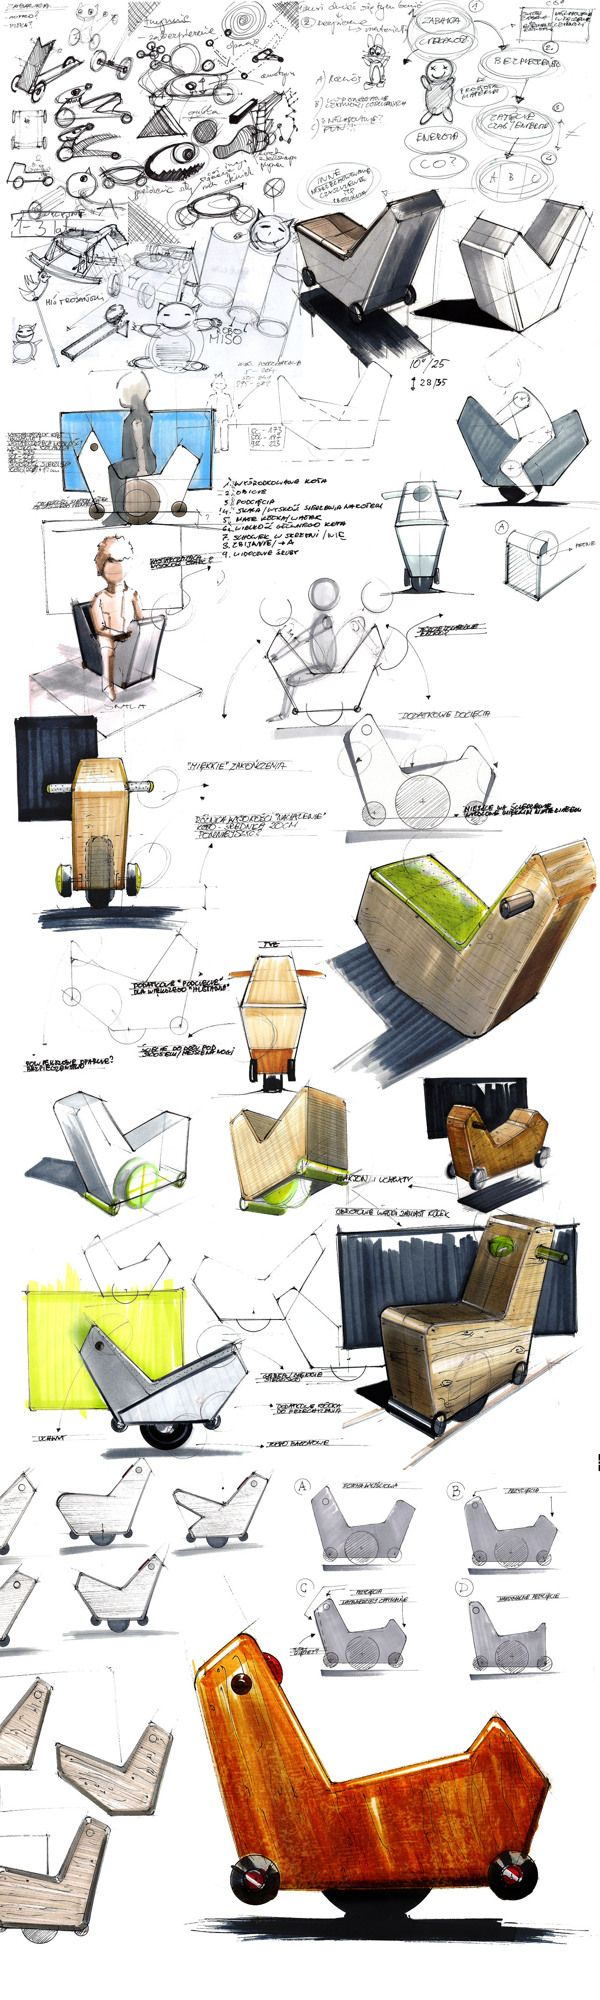 sketches vol.1 by Michał Markiewicz, via Behance.